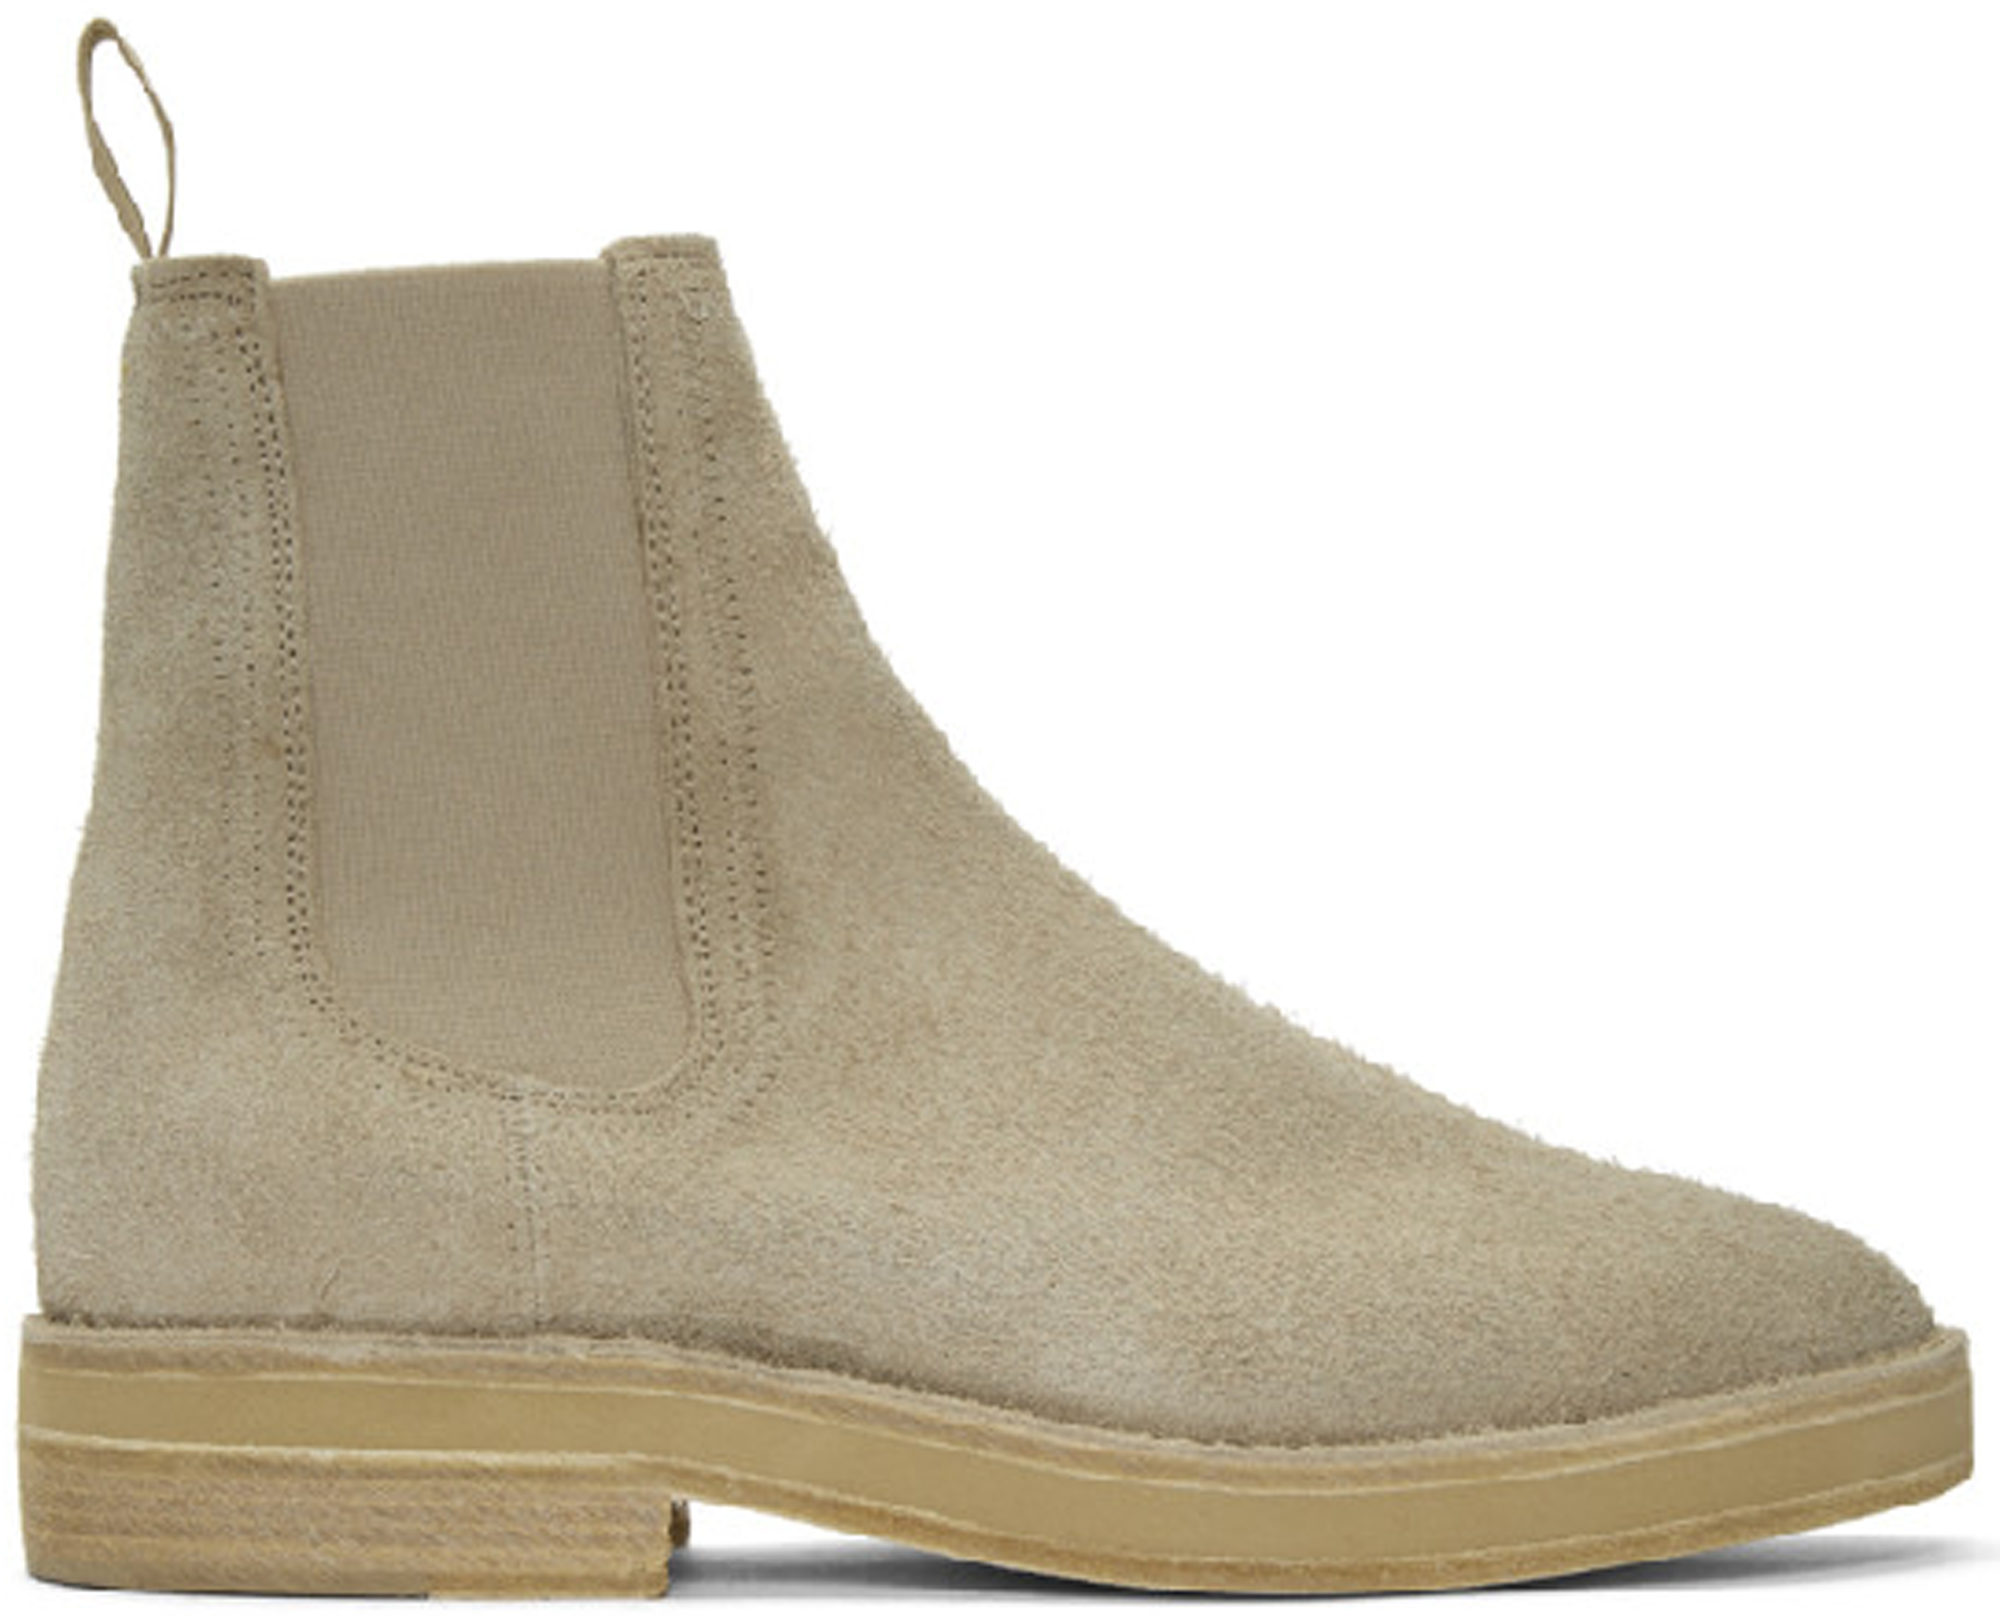 Yeezy Chelsea Boot Thick Shaggy Suede